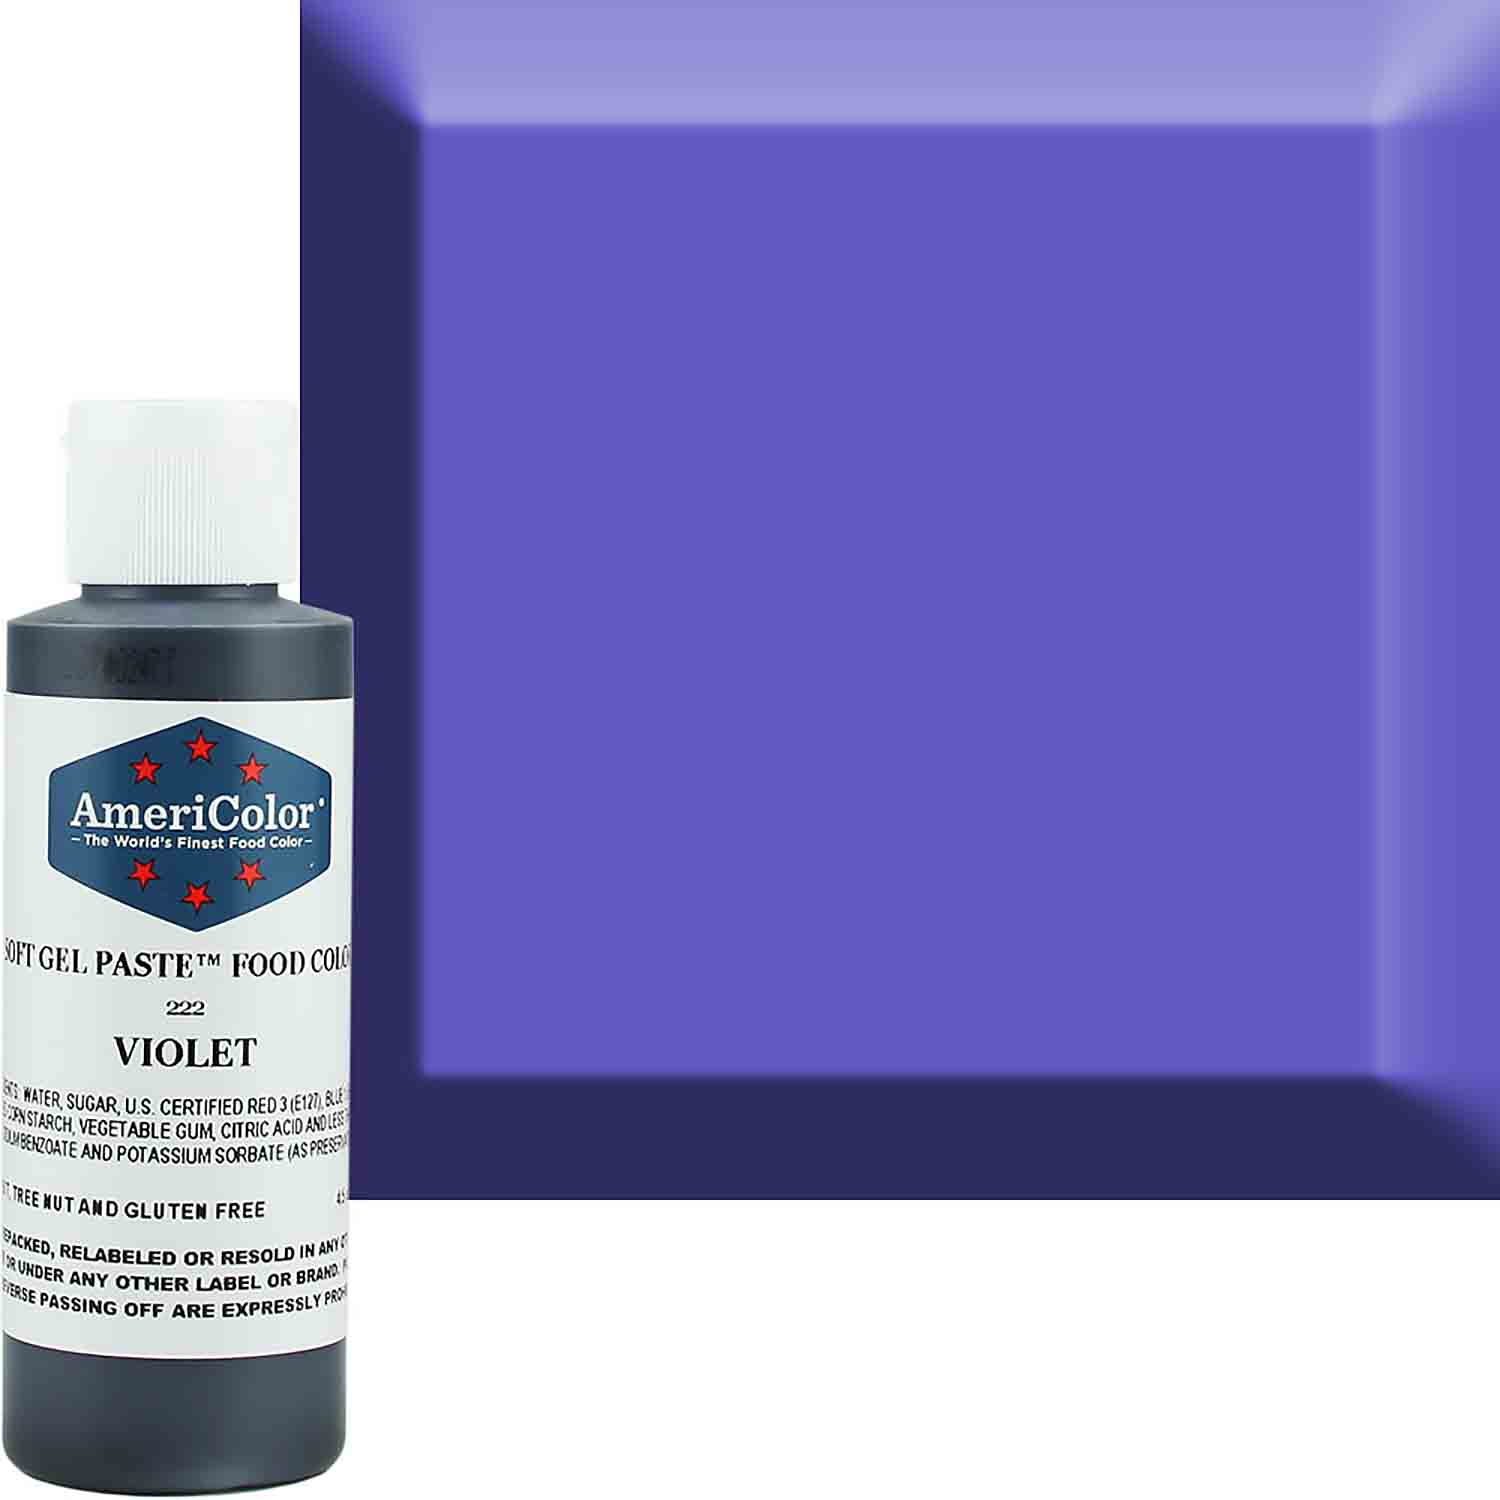 Violet Soft Gel Paste™ Food Color